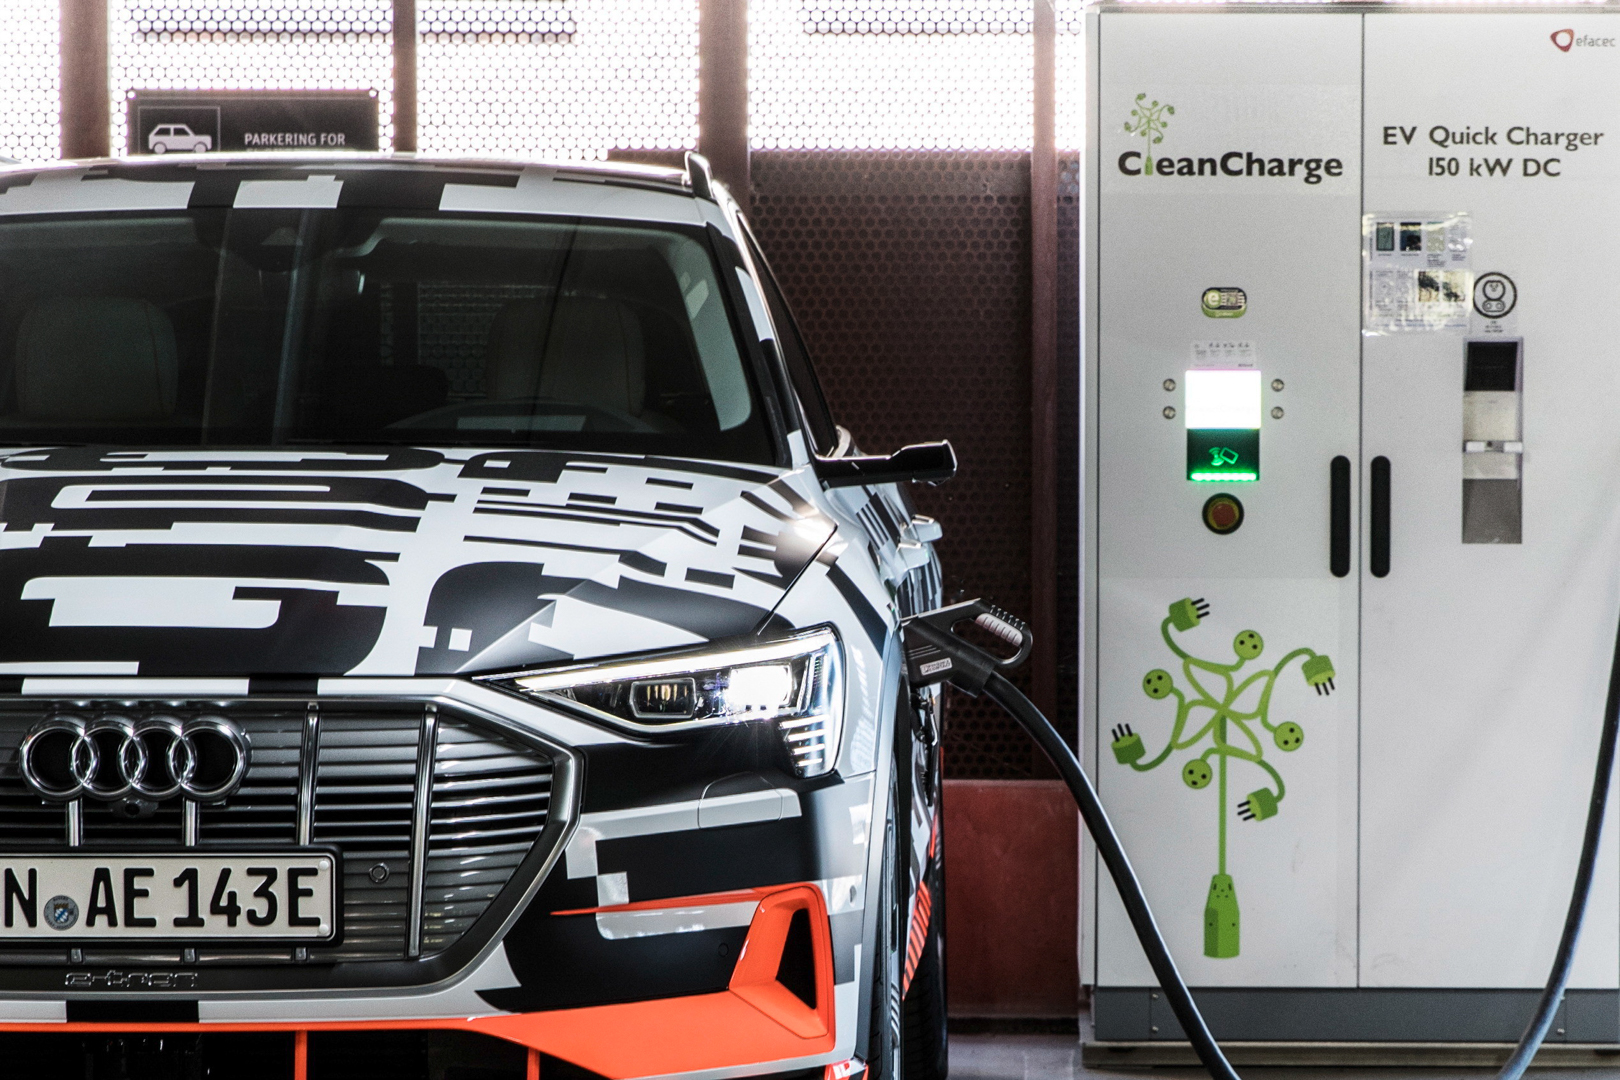 Porsche to create fast-charging stations — Could the Audi e-tron share?